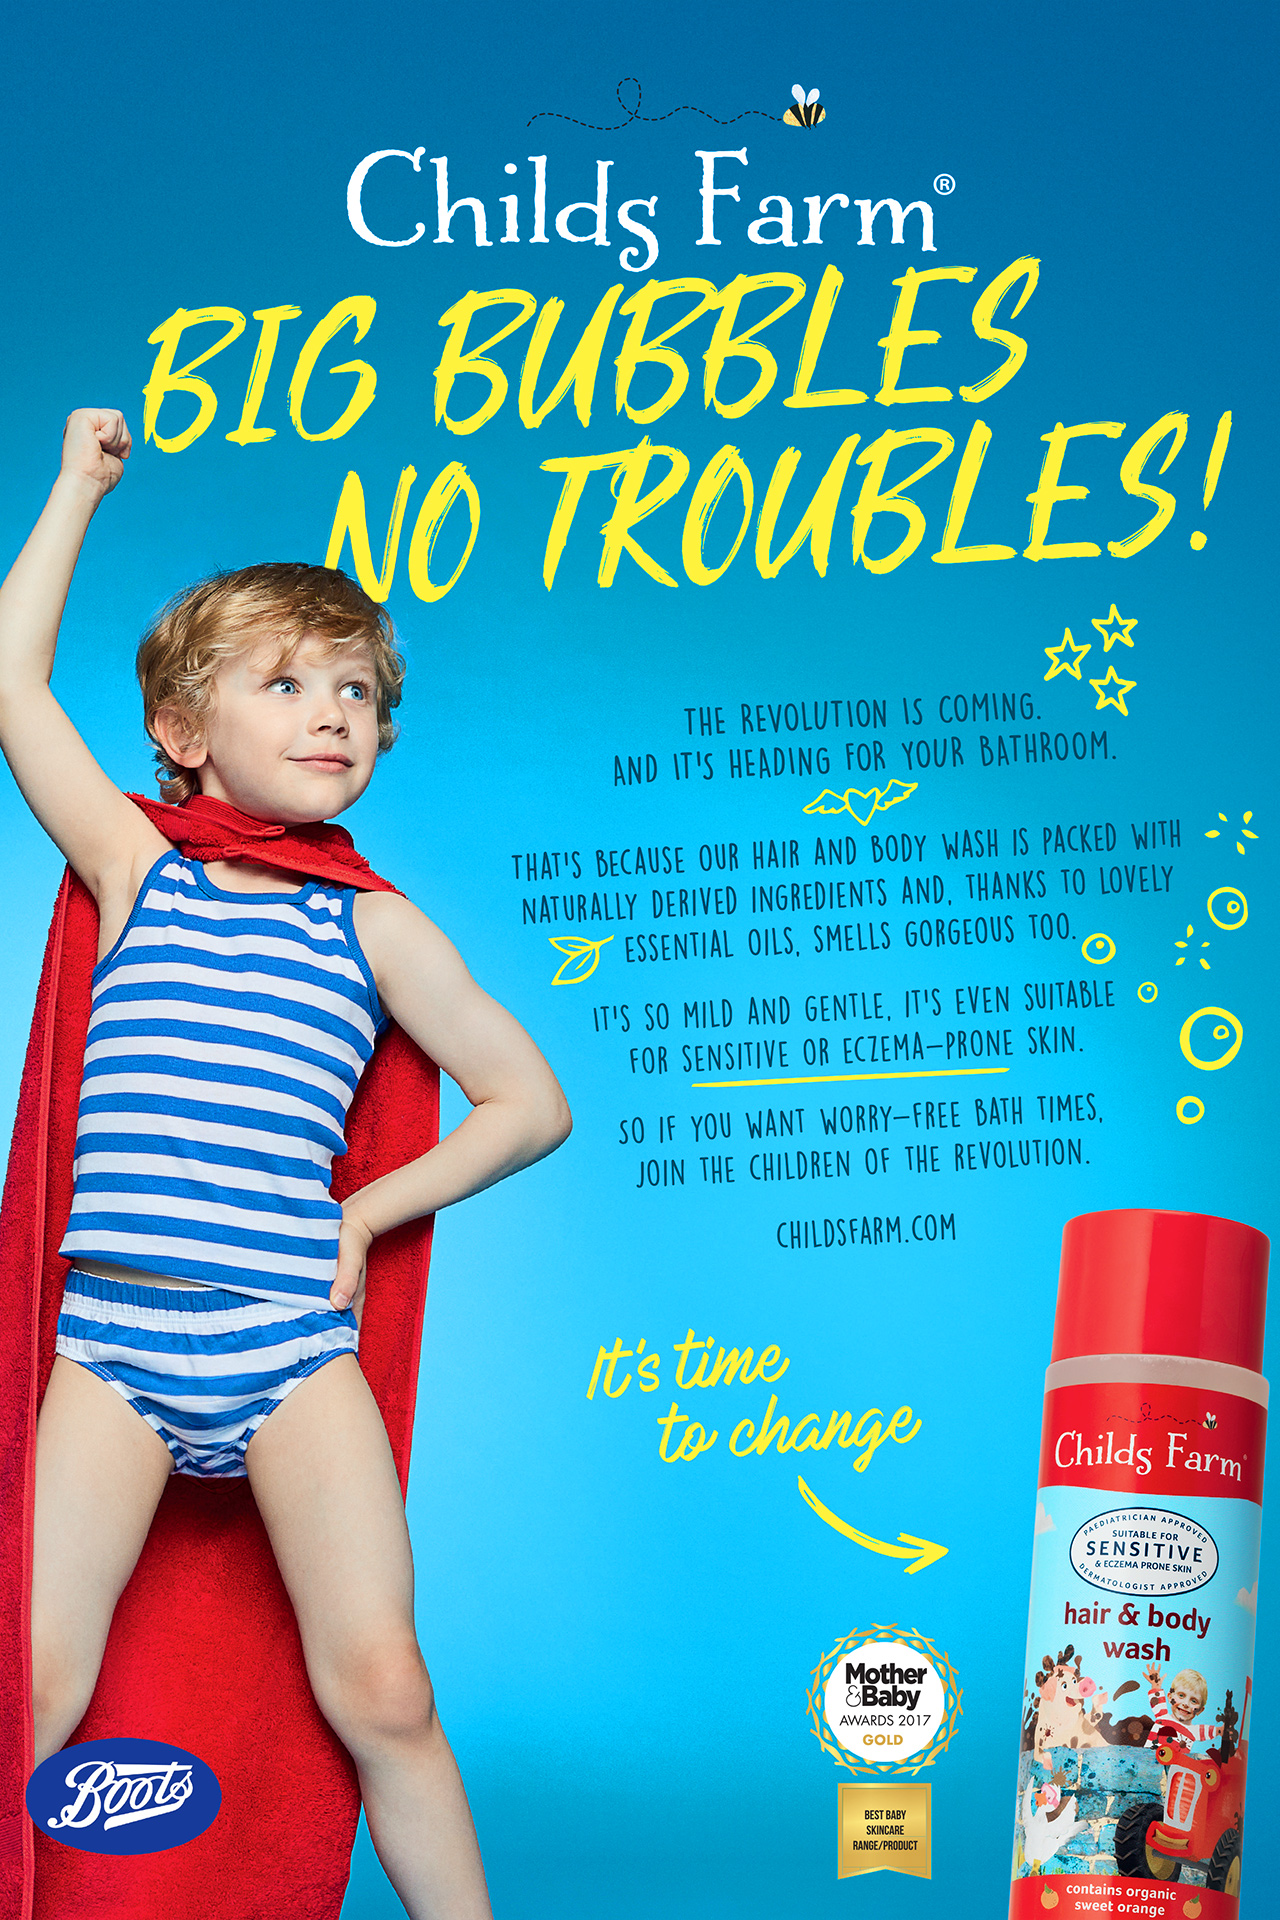 Childs Farm Advert BIG BUBBLES NO TROUBLES Emma Tunbridge